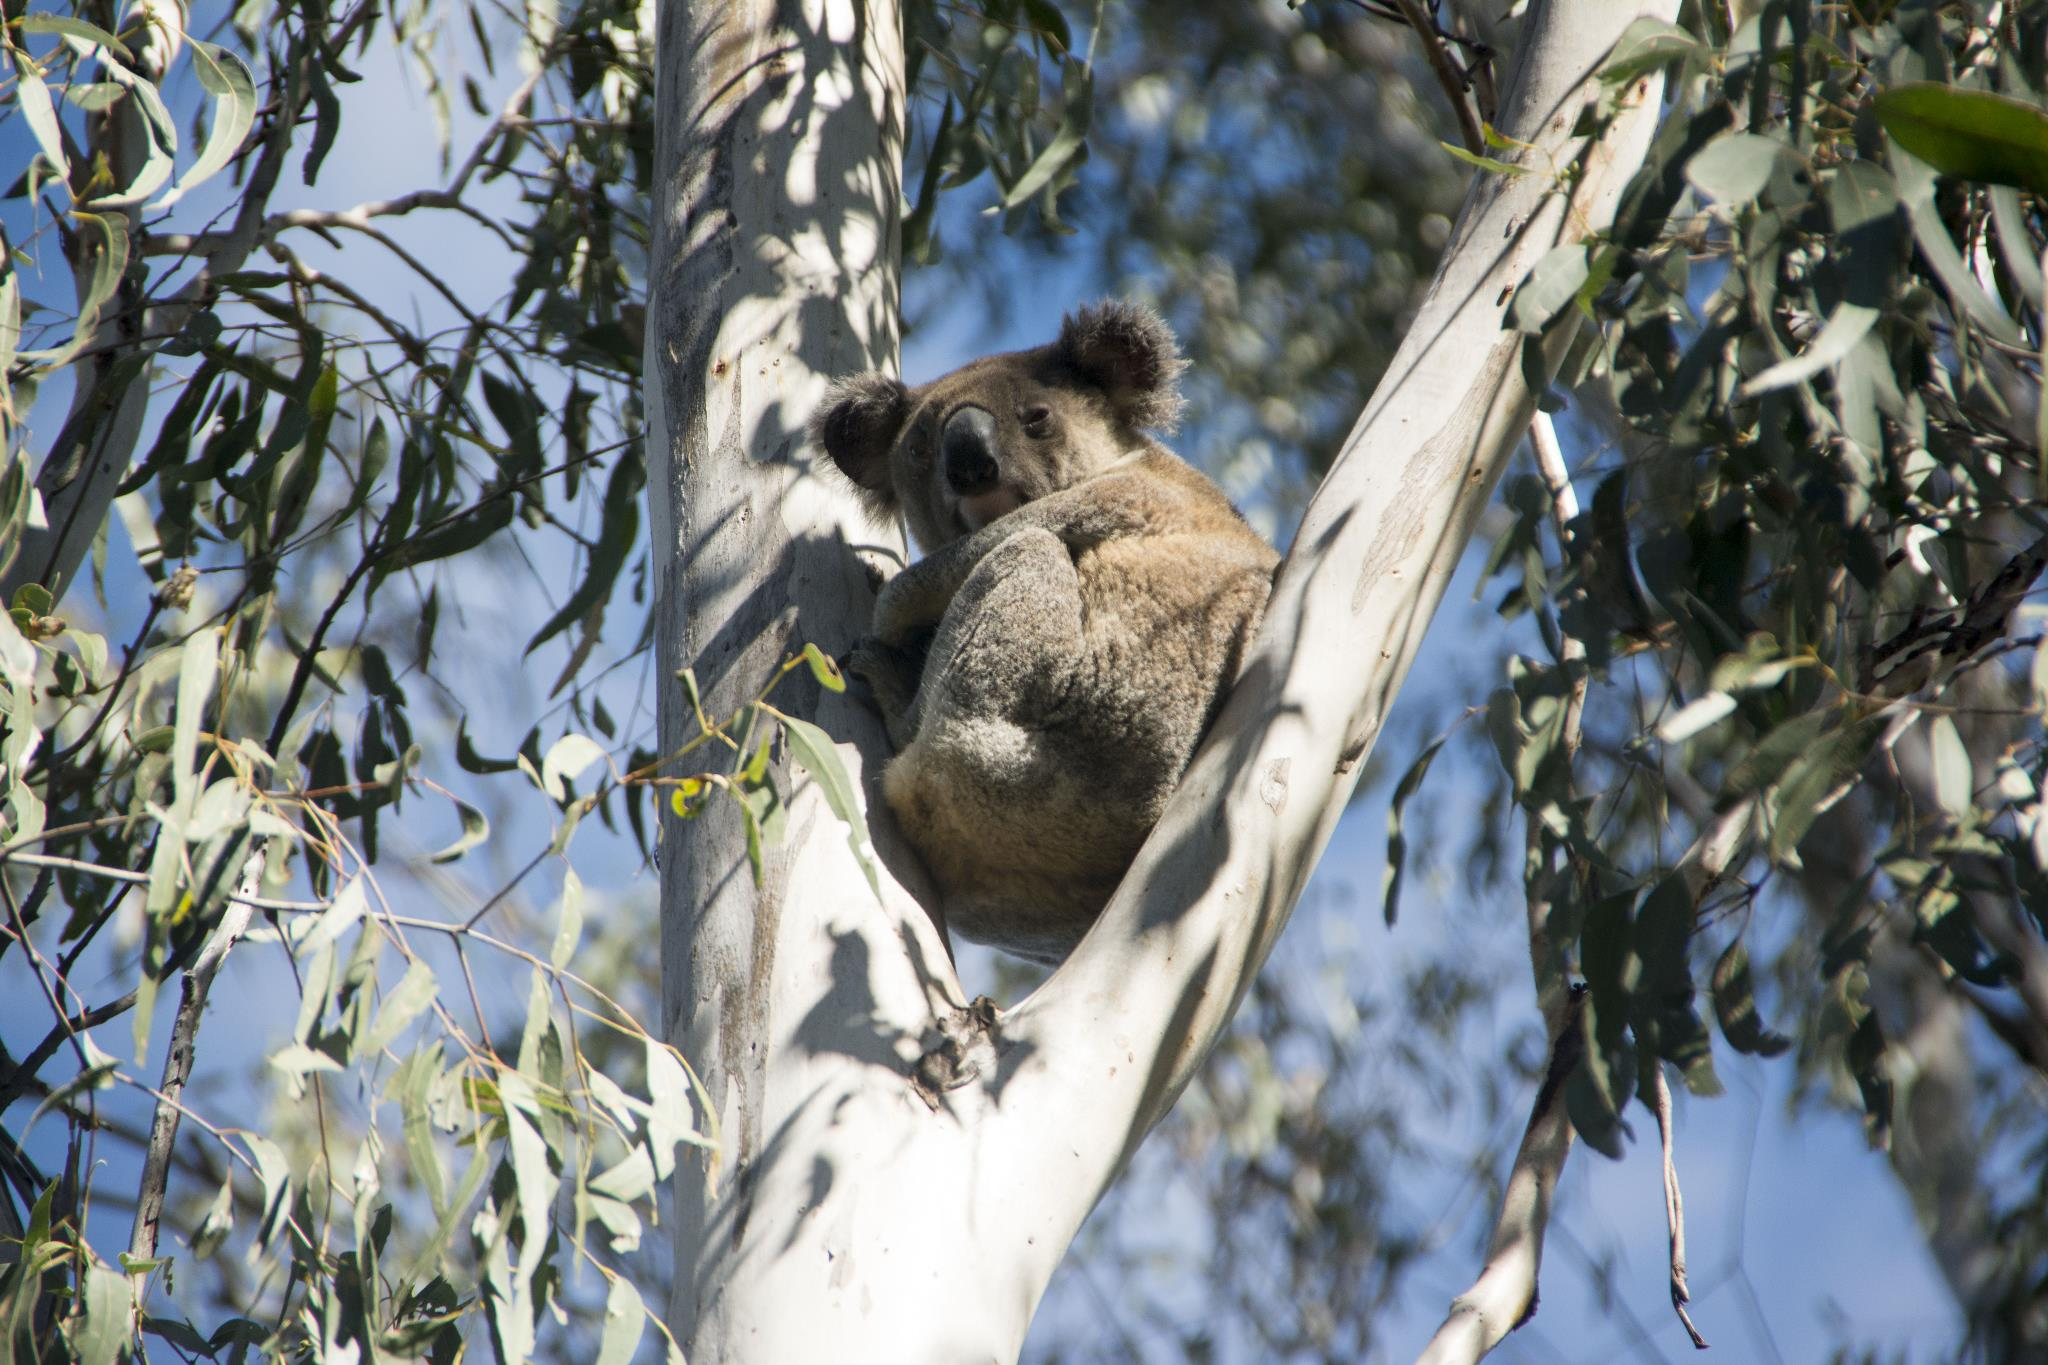 Renee - our local koala